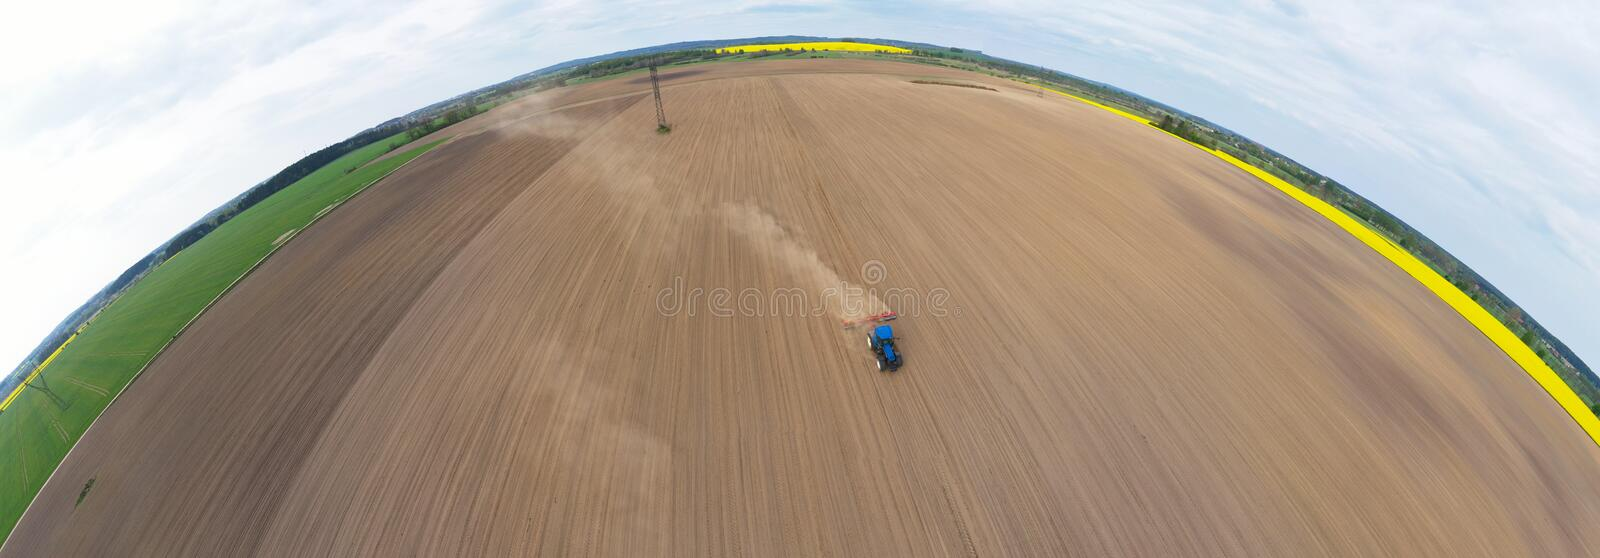 Aerial wide curved panoramic view on blue tractor pulling a plow, preparing a soil for seed sowing, tractor making dirt cloud. stock images